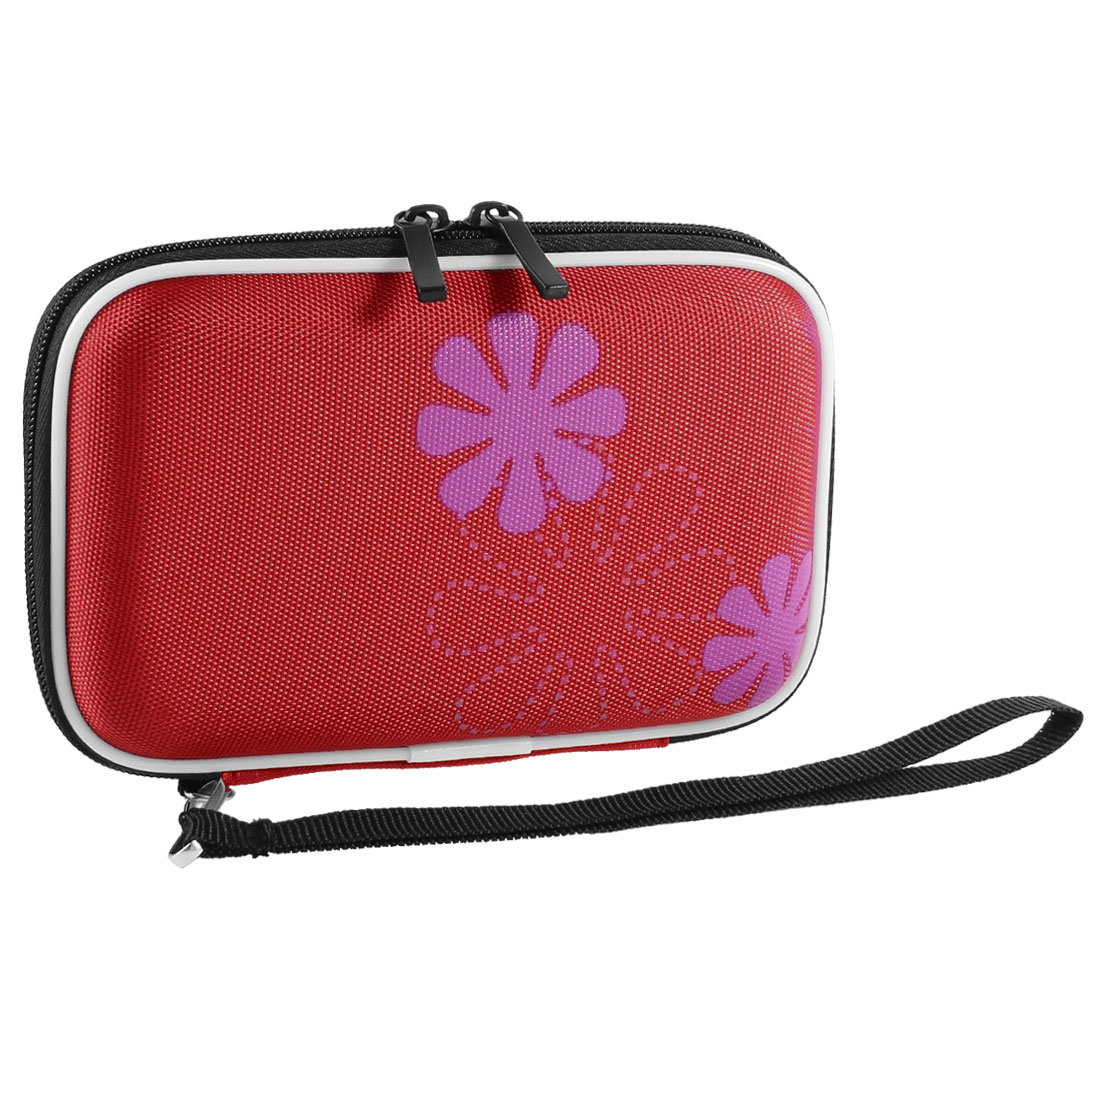 "Red EVA Protect Case Bag Pouch Zipper Closure for 2.5"" HDD Hard Drive Disk"